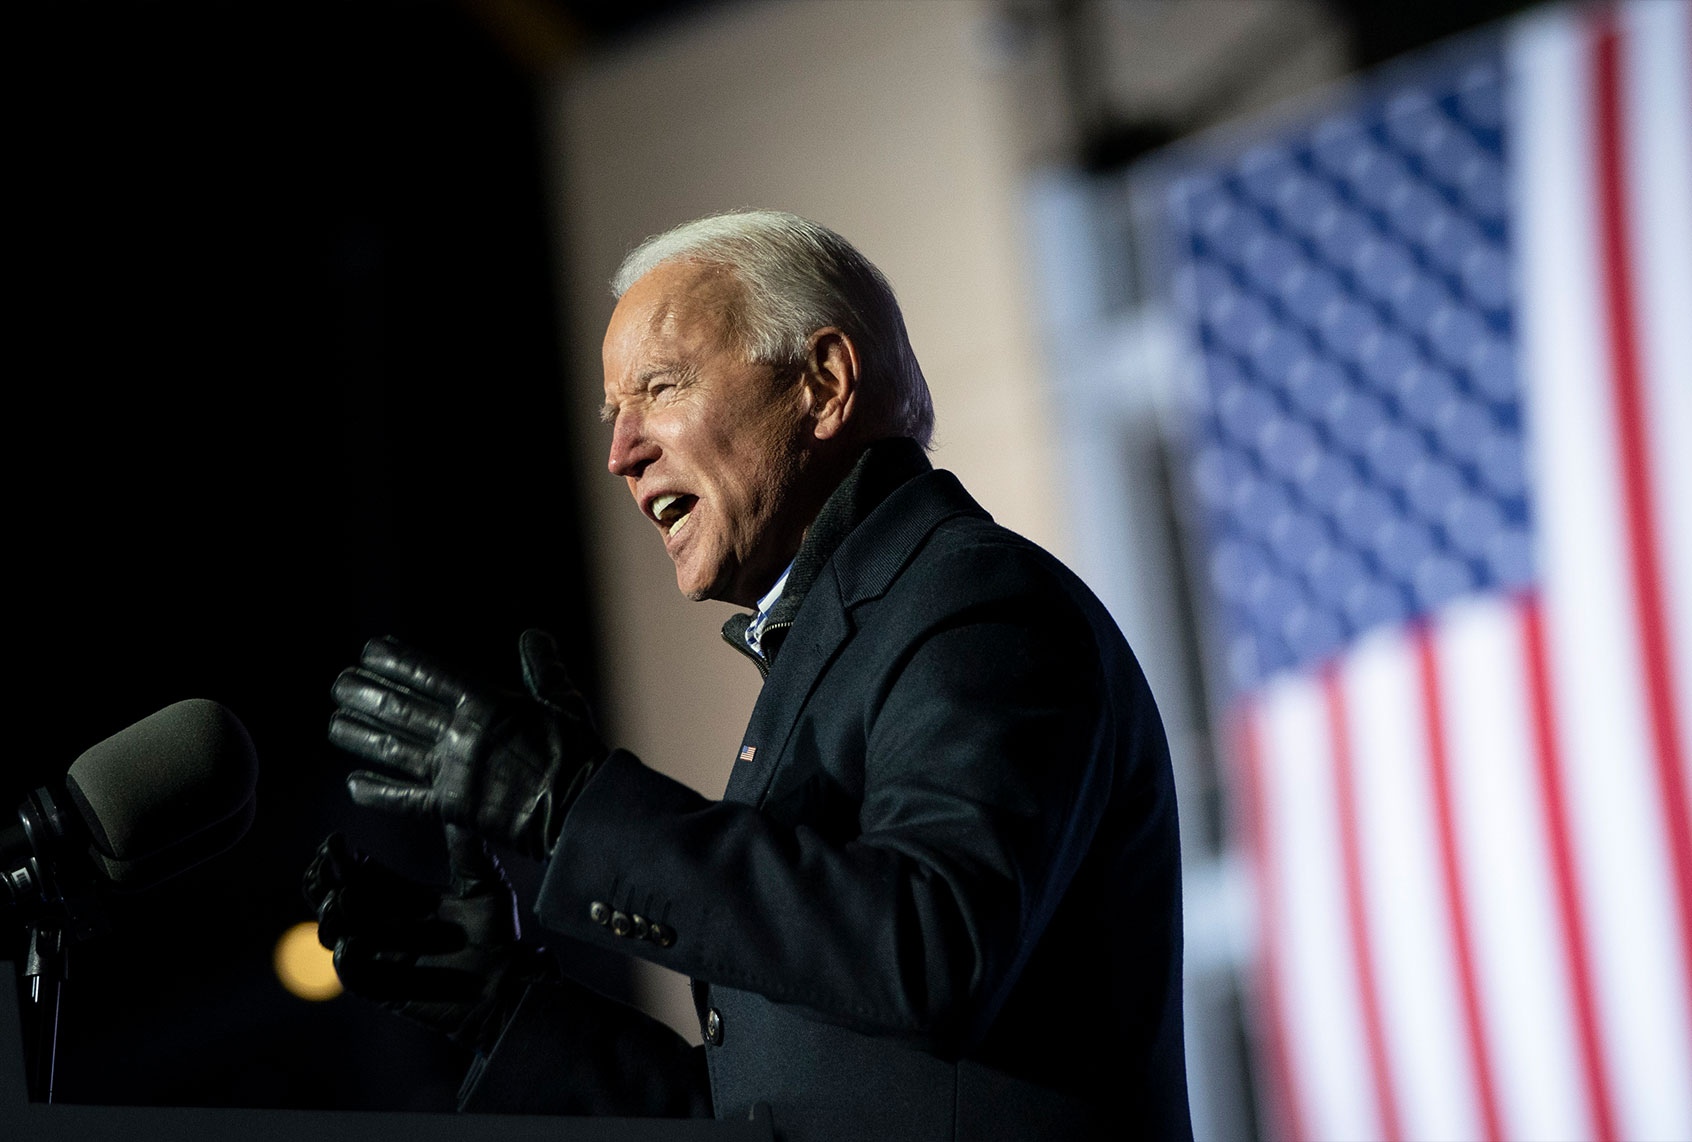 Chris Hedges on the task ahead: Will Biden surrender to plutocrats and paralysis? thumbnail